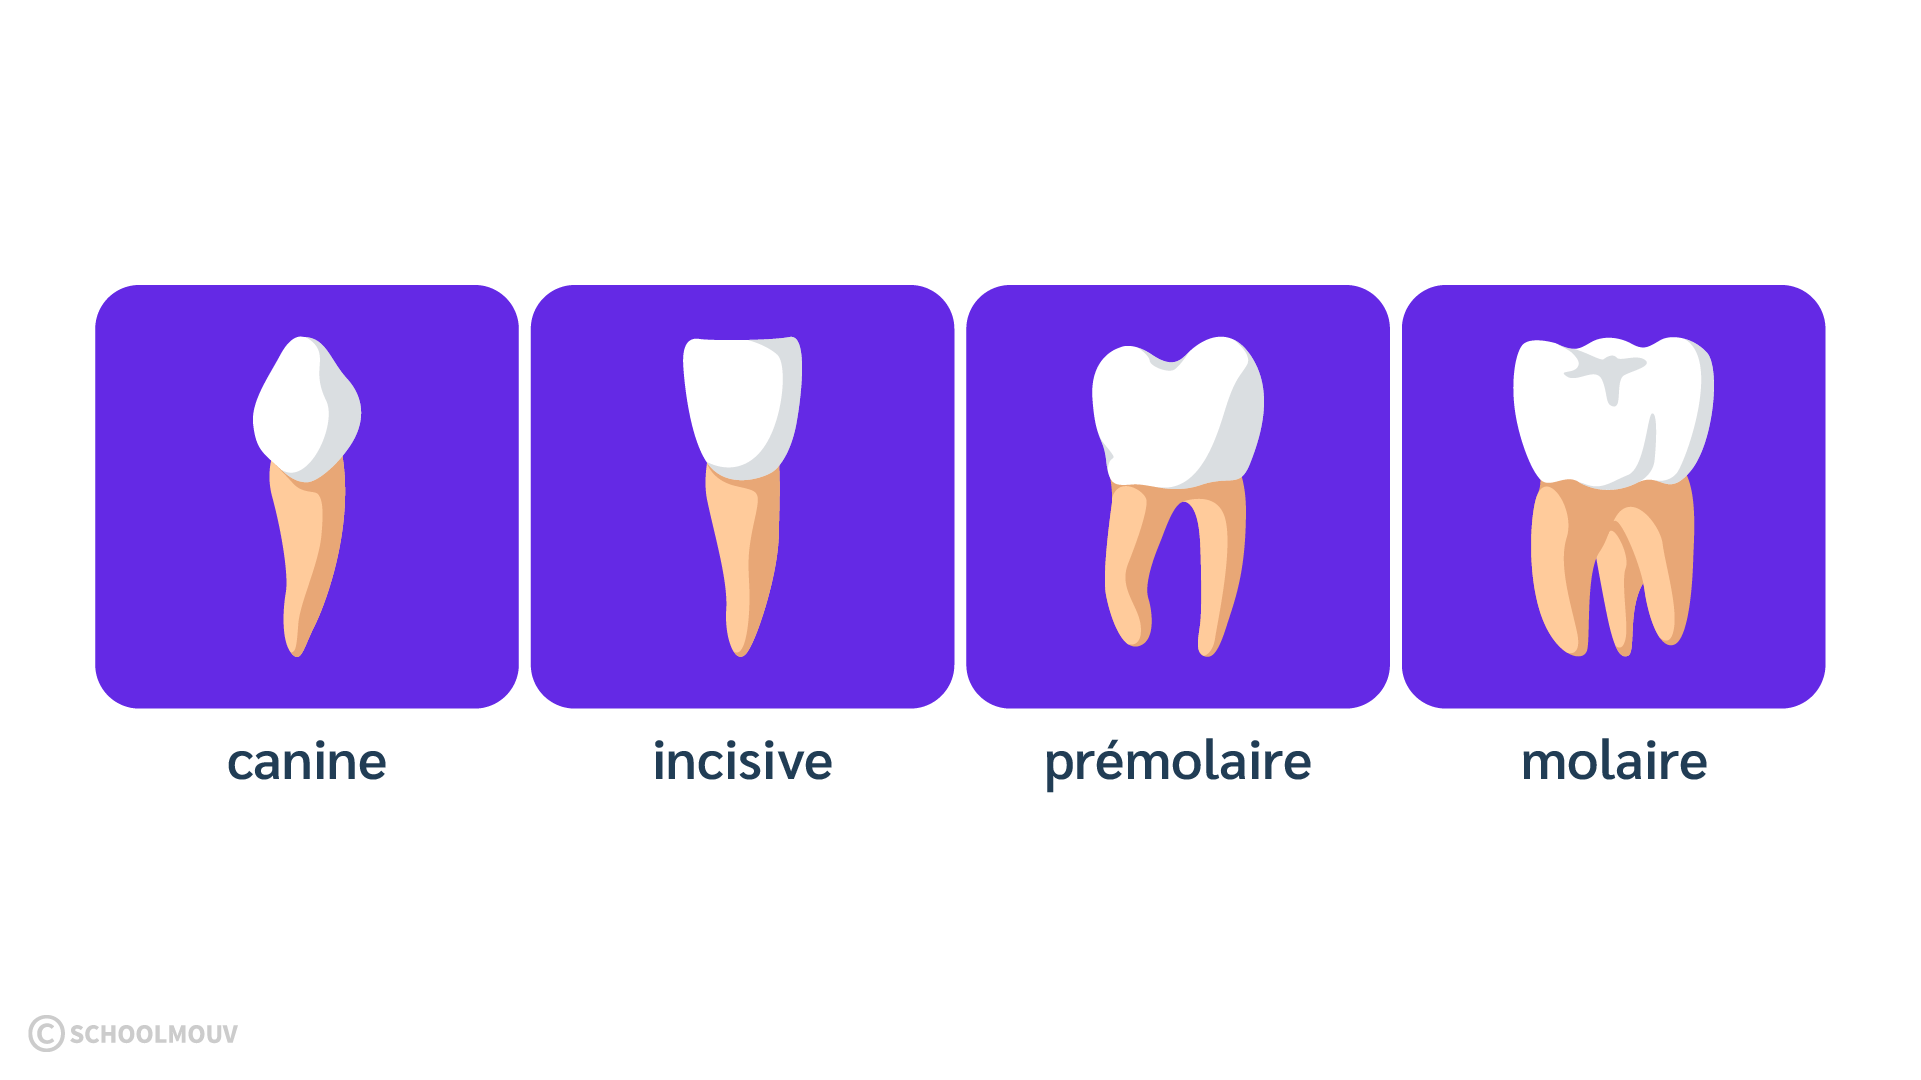 Dents - Bouche - Dentition - Canine - Incisive - Molaire - Prémolaire - SchoolMouv - Sciences - CE1